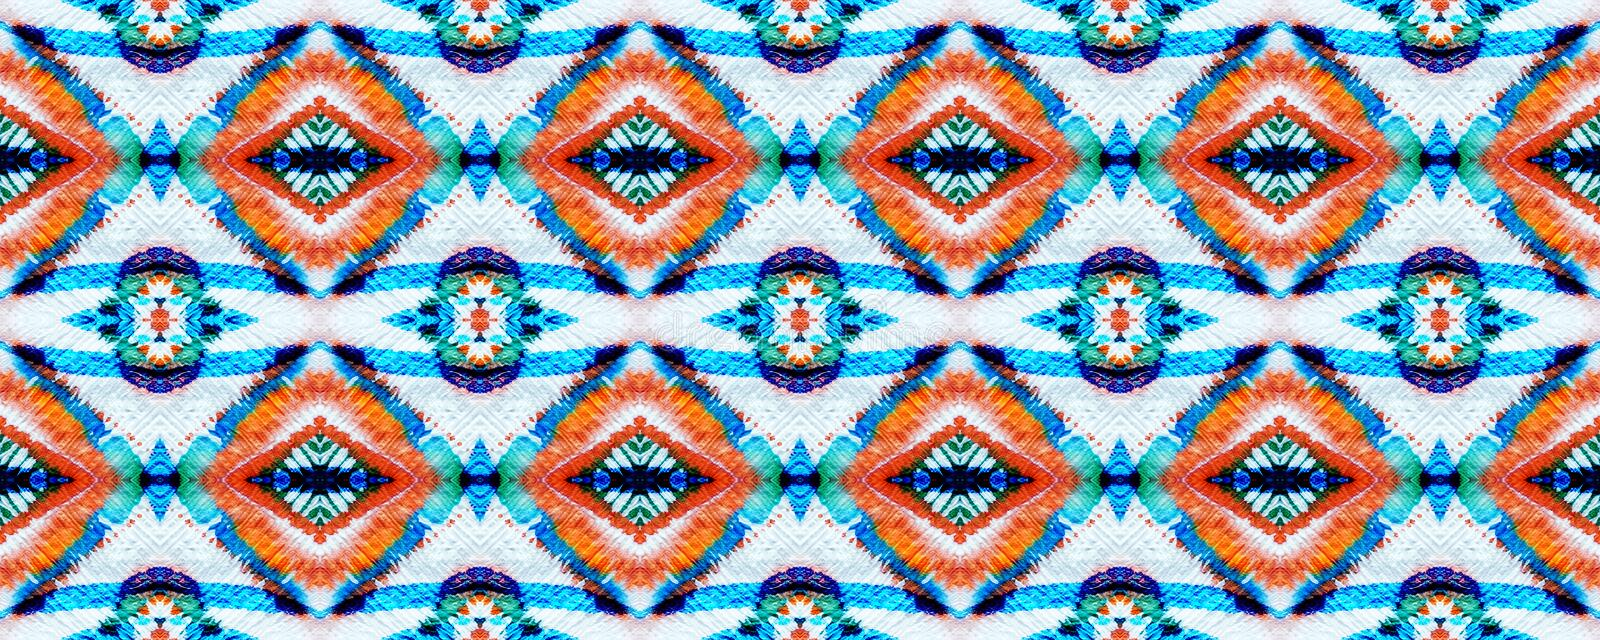 Ikat Seamless Pattern. Aztec Geometric Textile Border Ogee Seamless Texture. Ikat Pattern. Psychedelic Rainbow Watercolor Hand Drawn Textile. Creative Navajo royalty free stock images